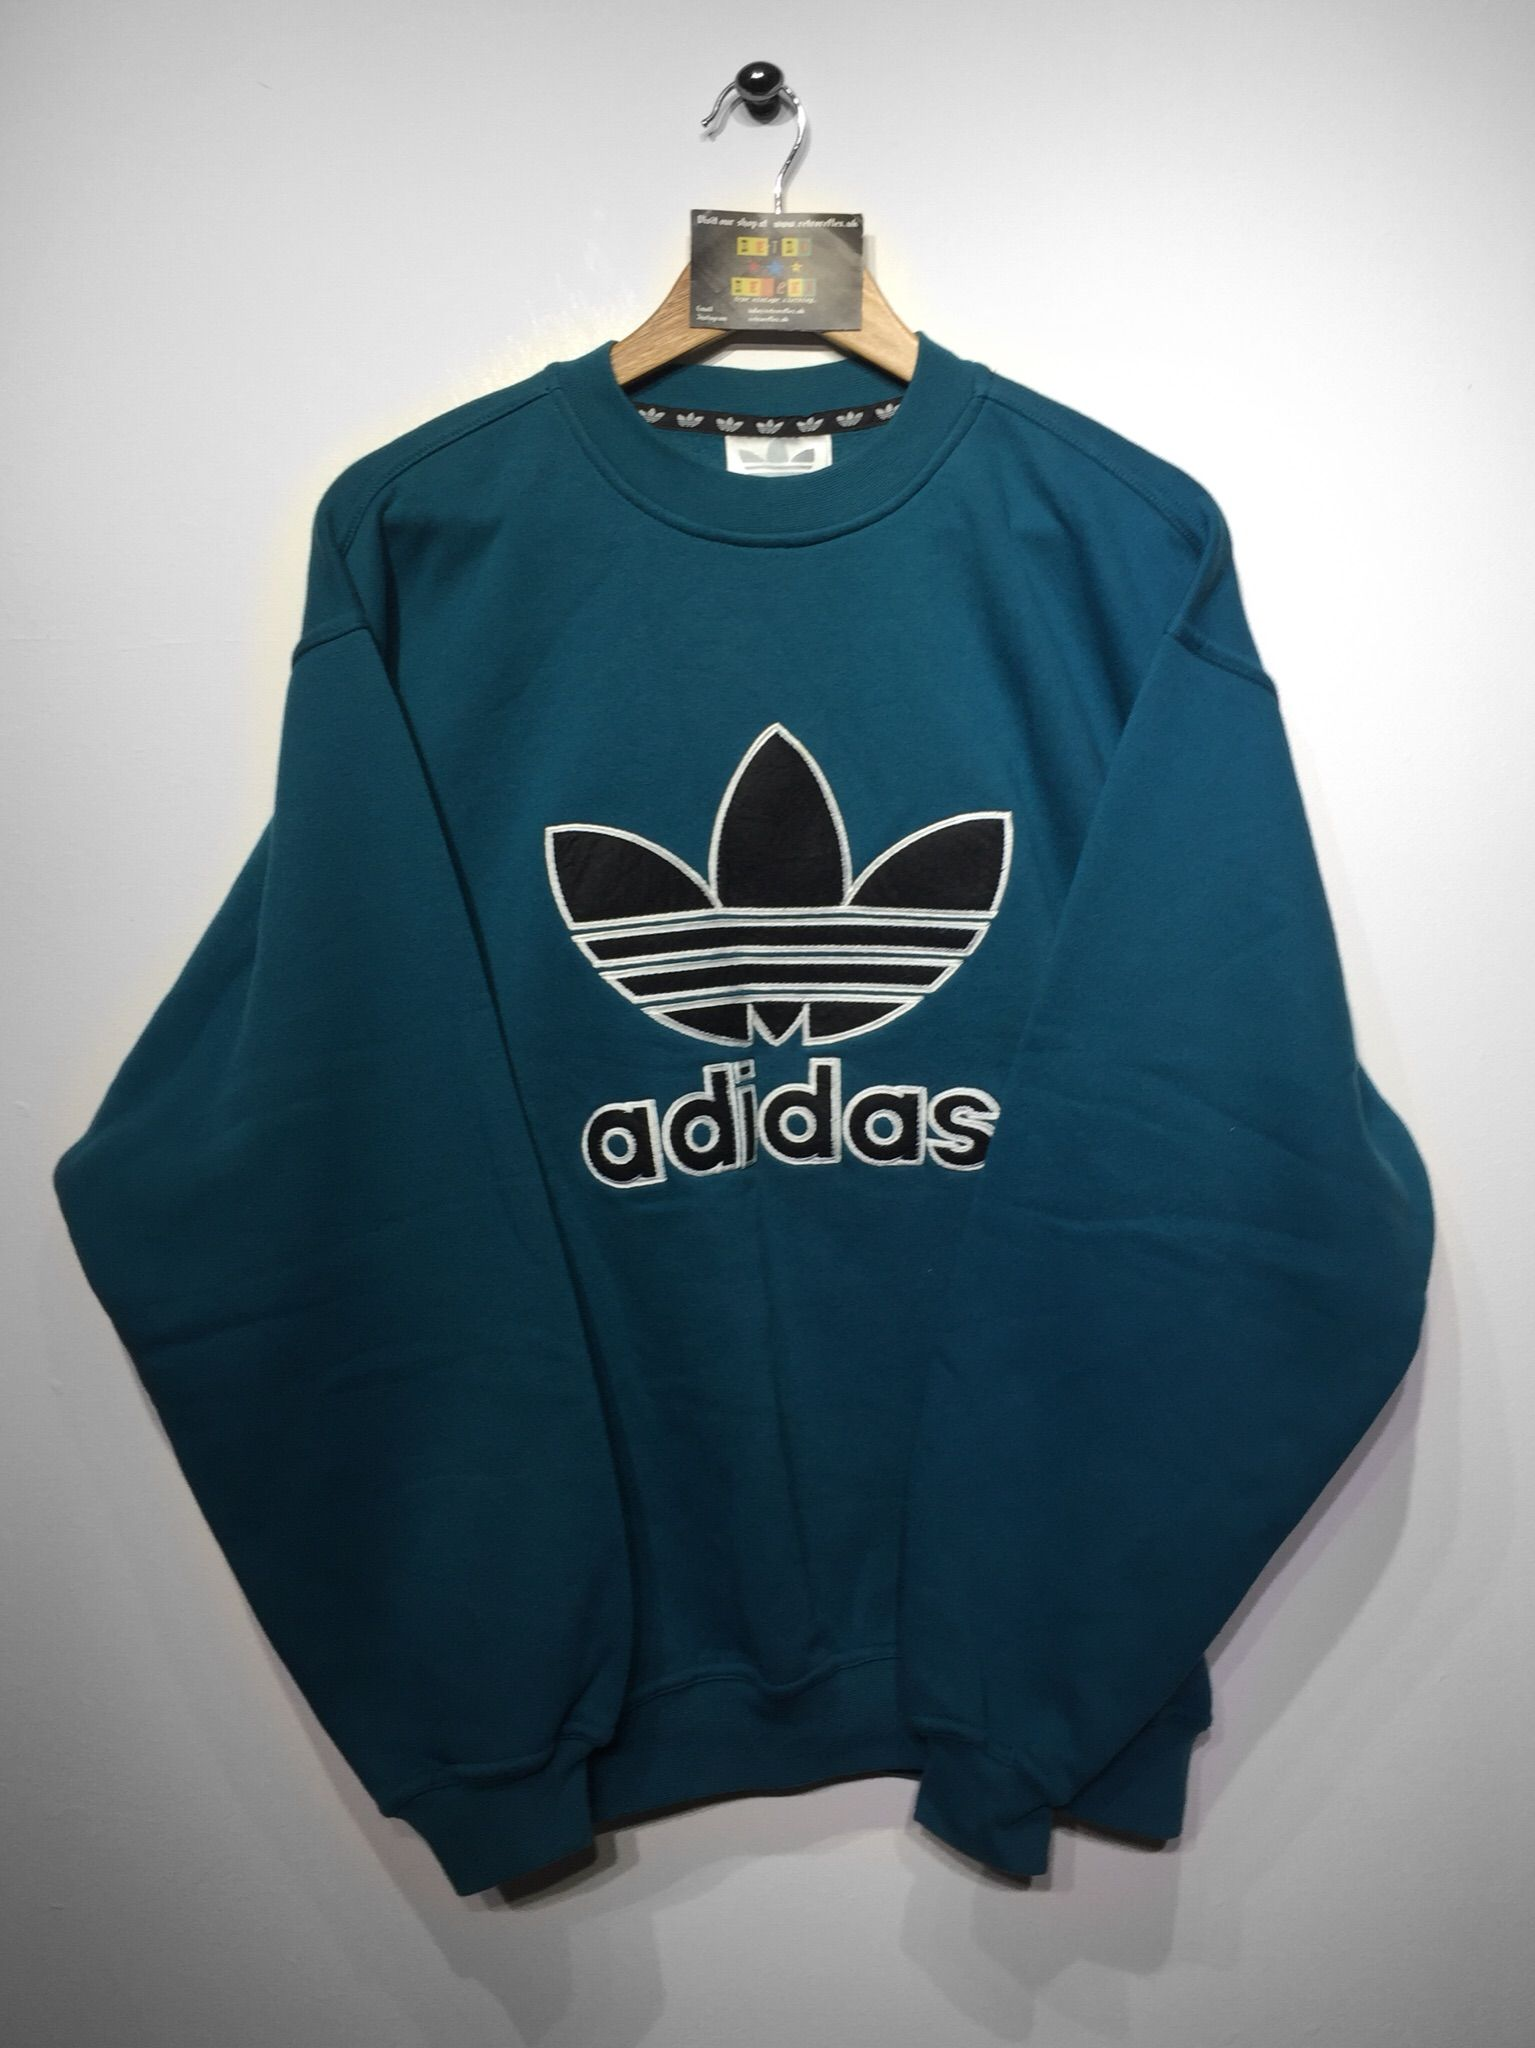 Adidas Sweatshirt Size Small (but Fits Oversized) £36